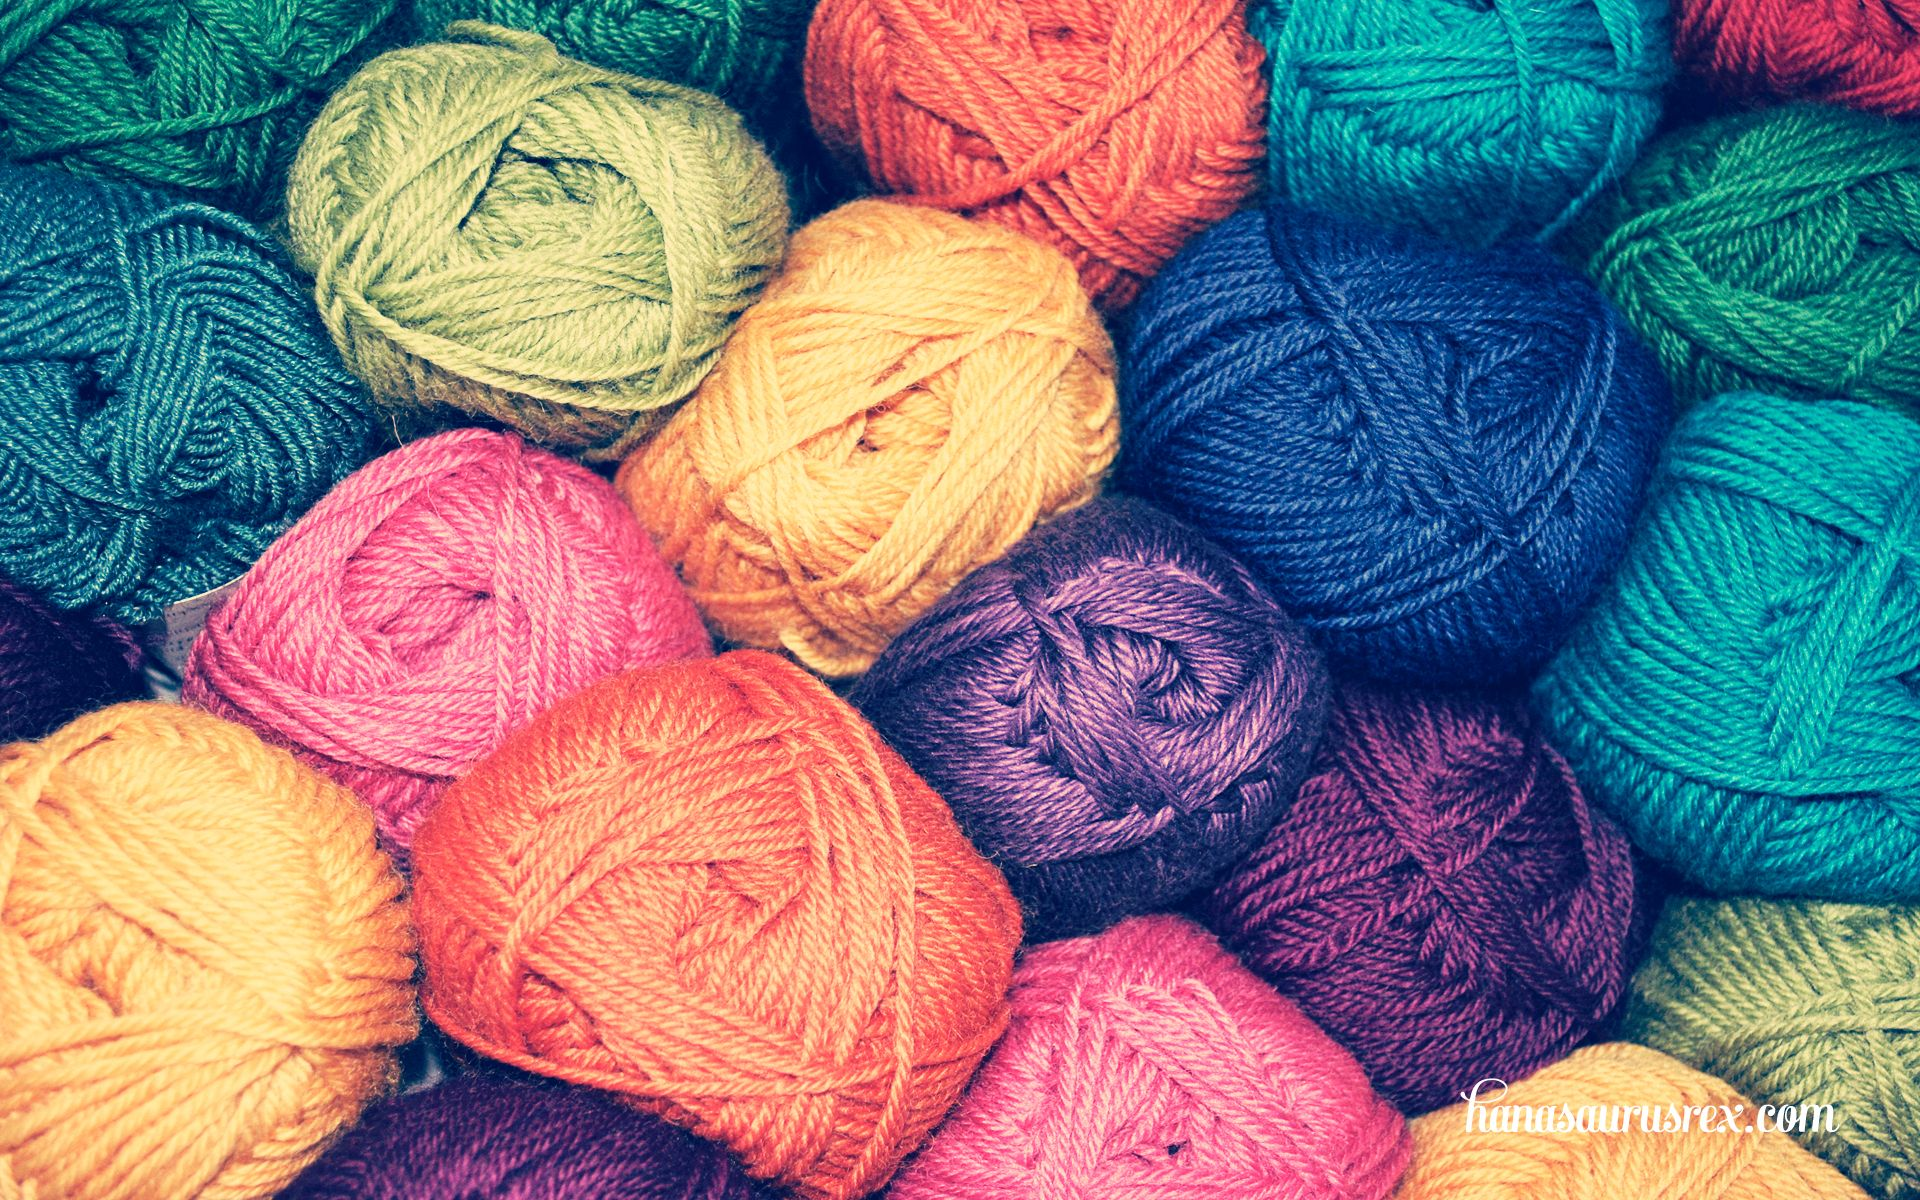 Crocheting Groups : Crochet Fridays - Crocheters in Central CT (Plainville, CT) Meetup